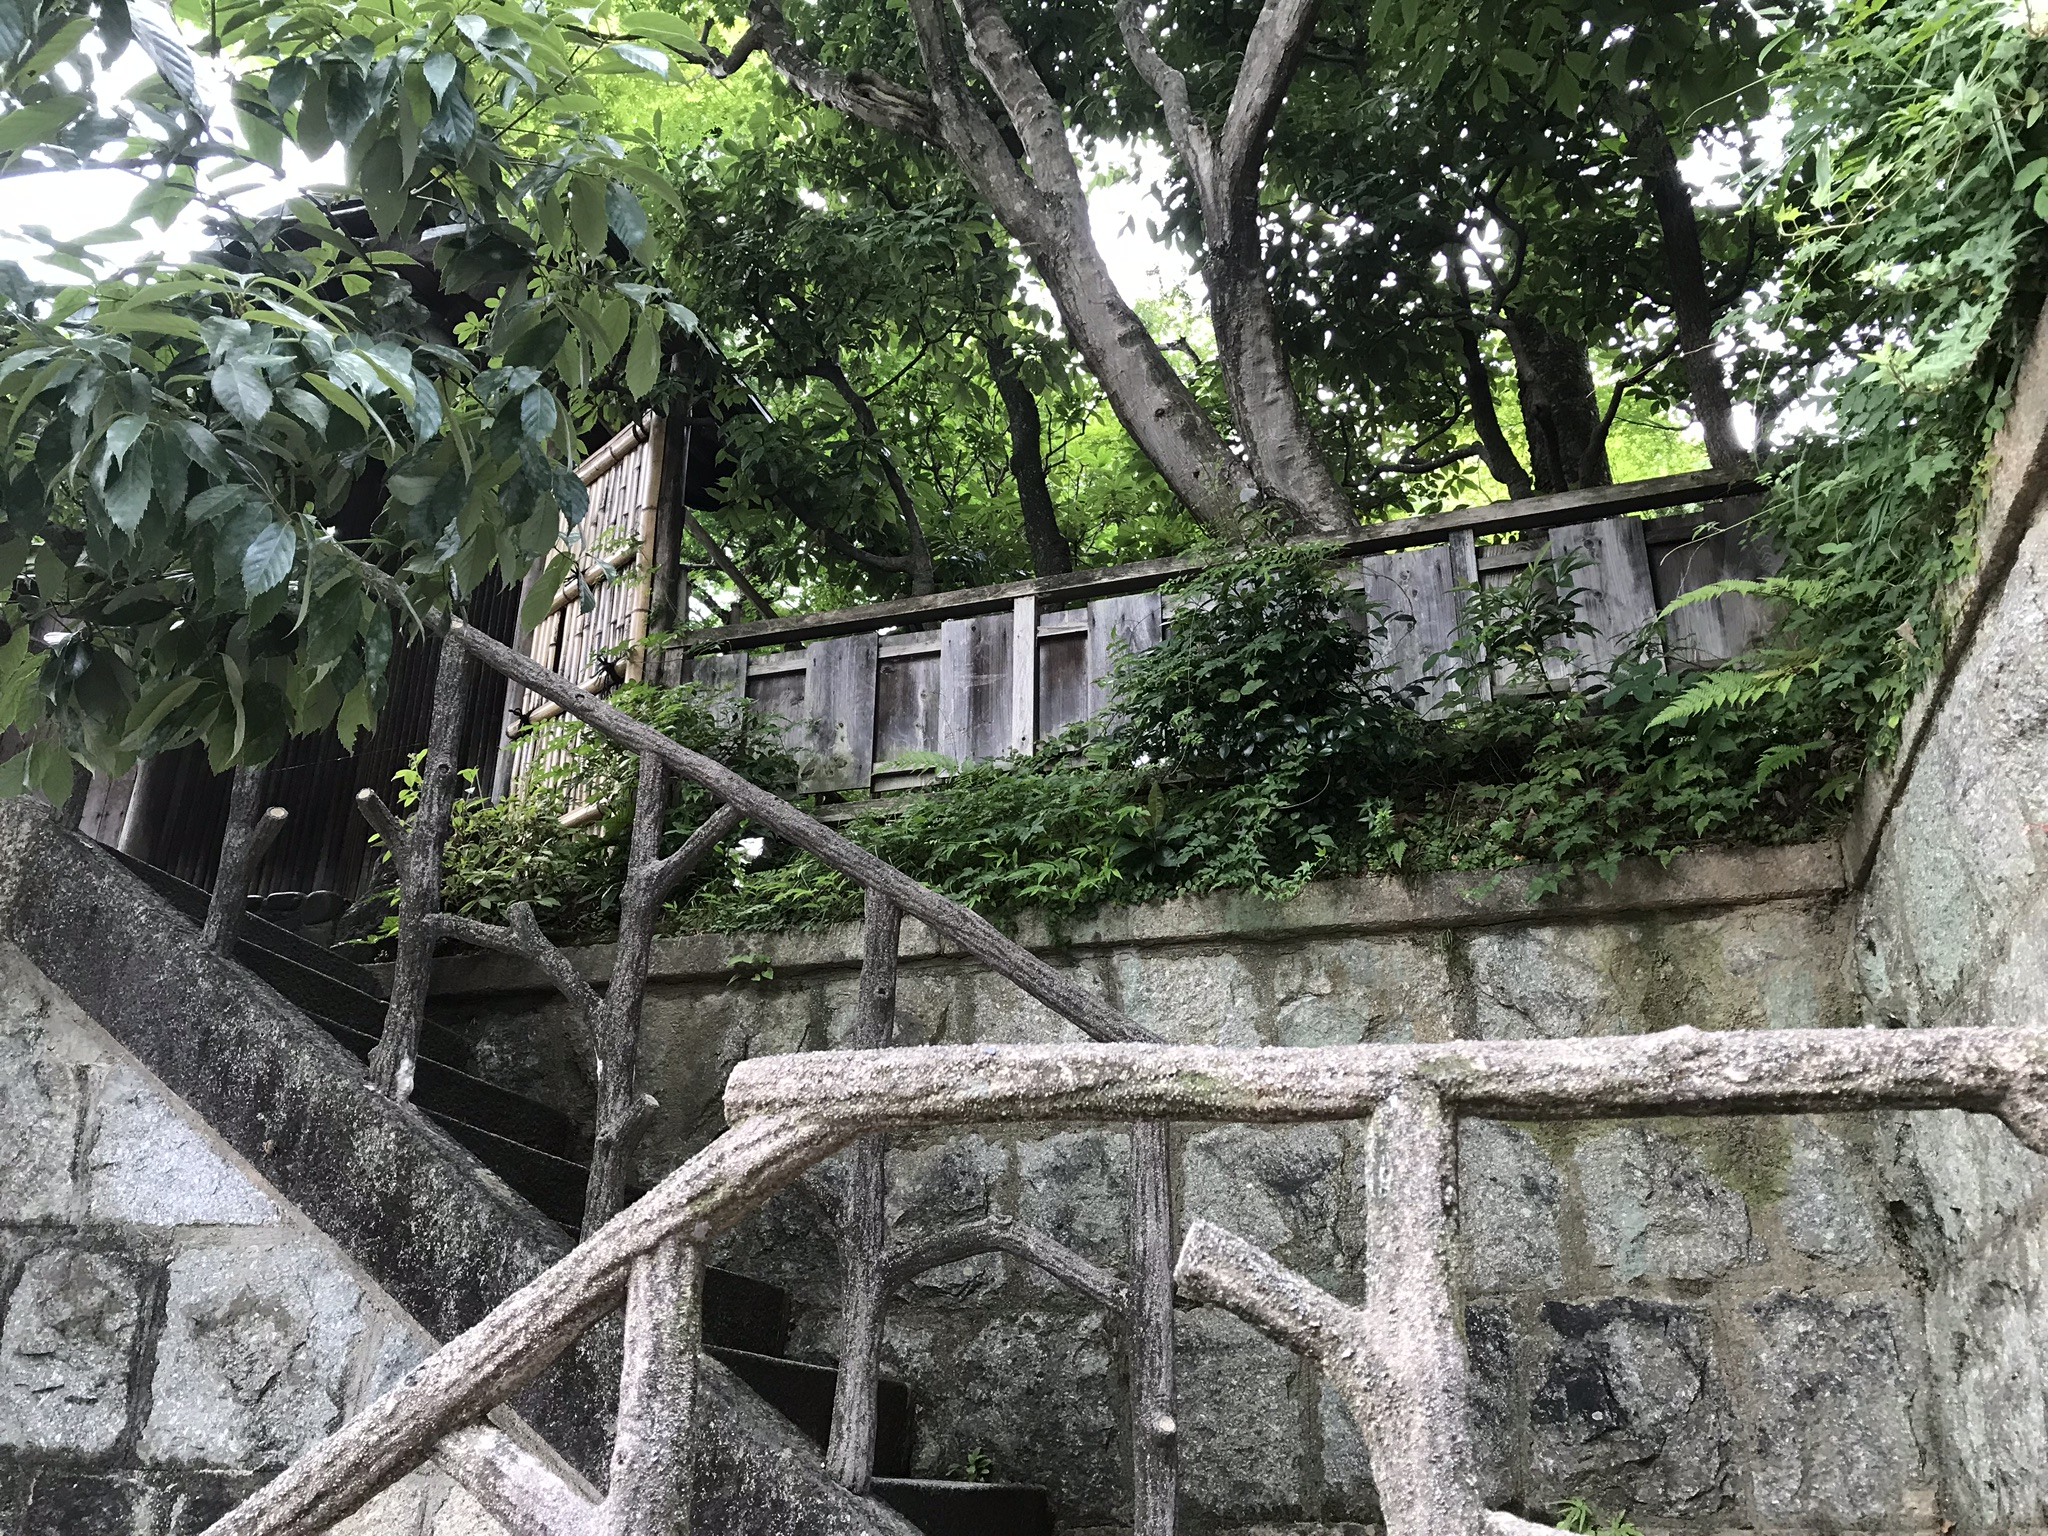 Steps up to the gallery, located near Kyoto's famed Ginkaku-ji Temple, or Silver Pavillion.